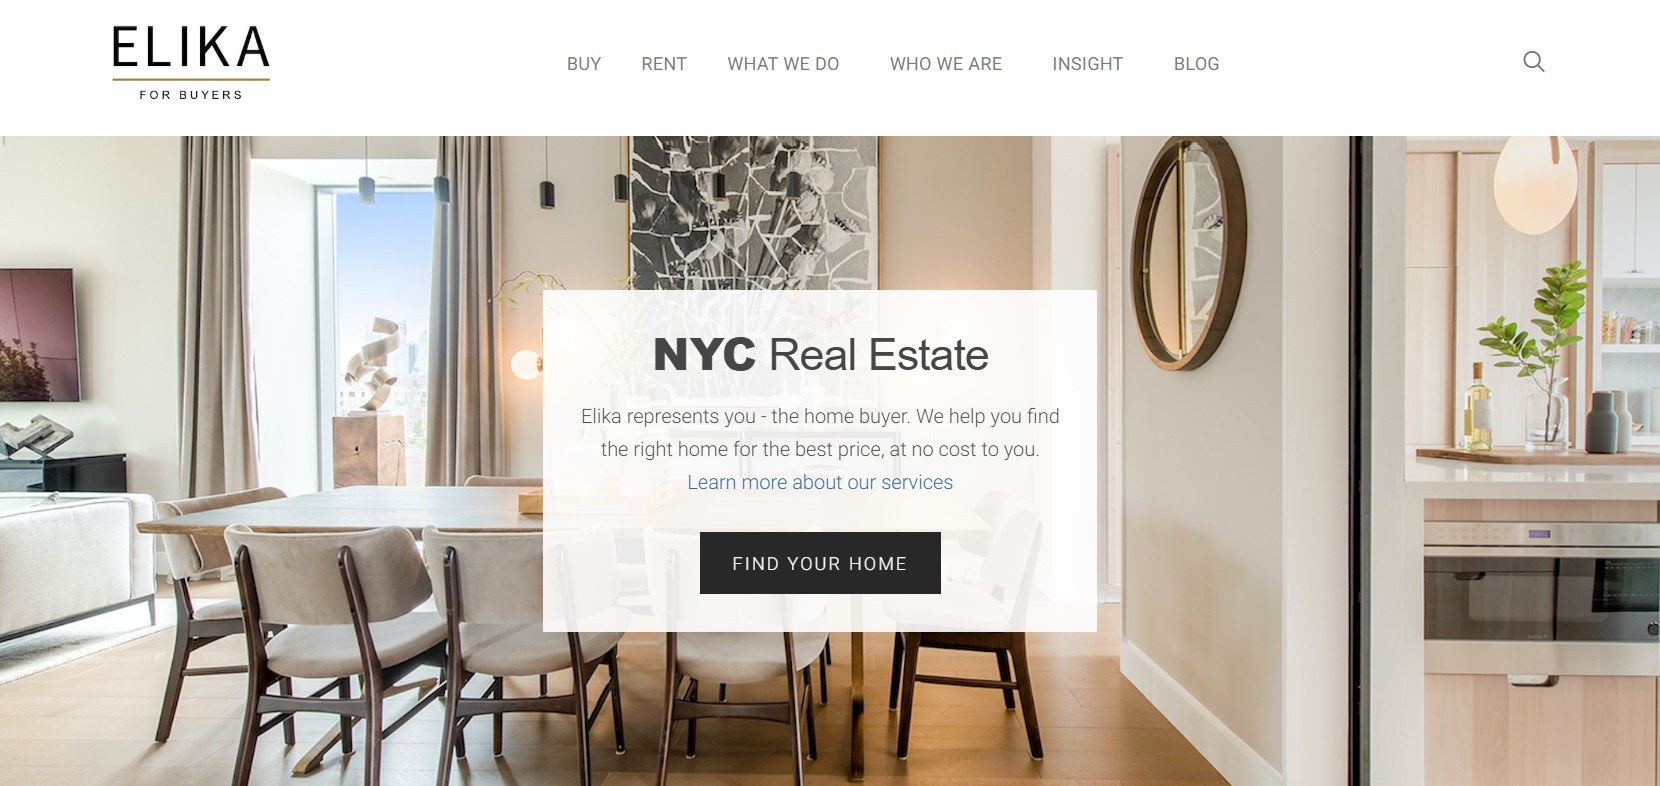 elika real estate agent in new york